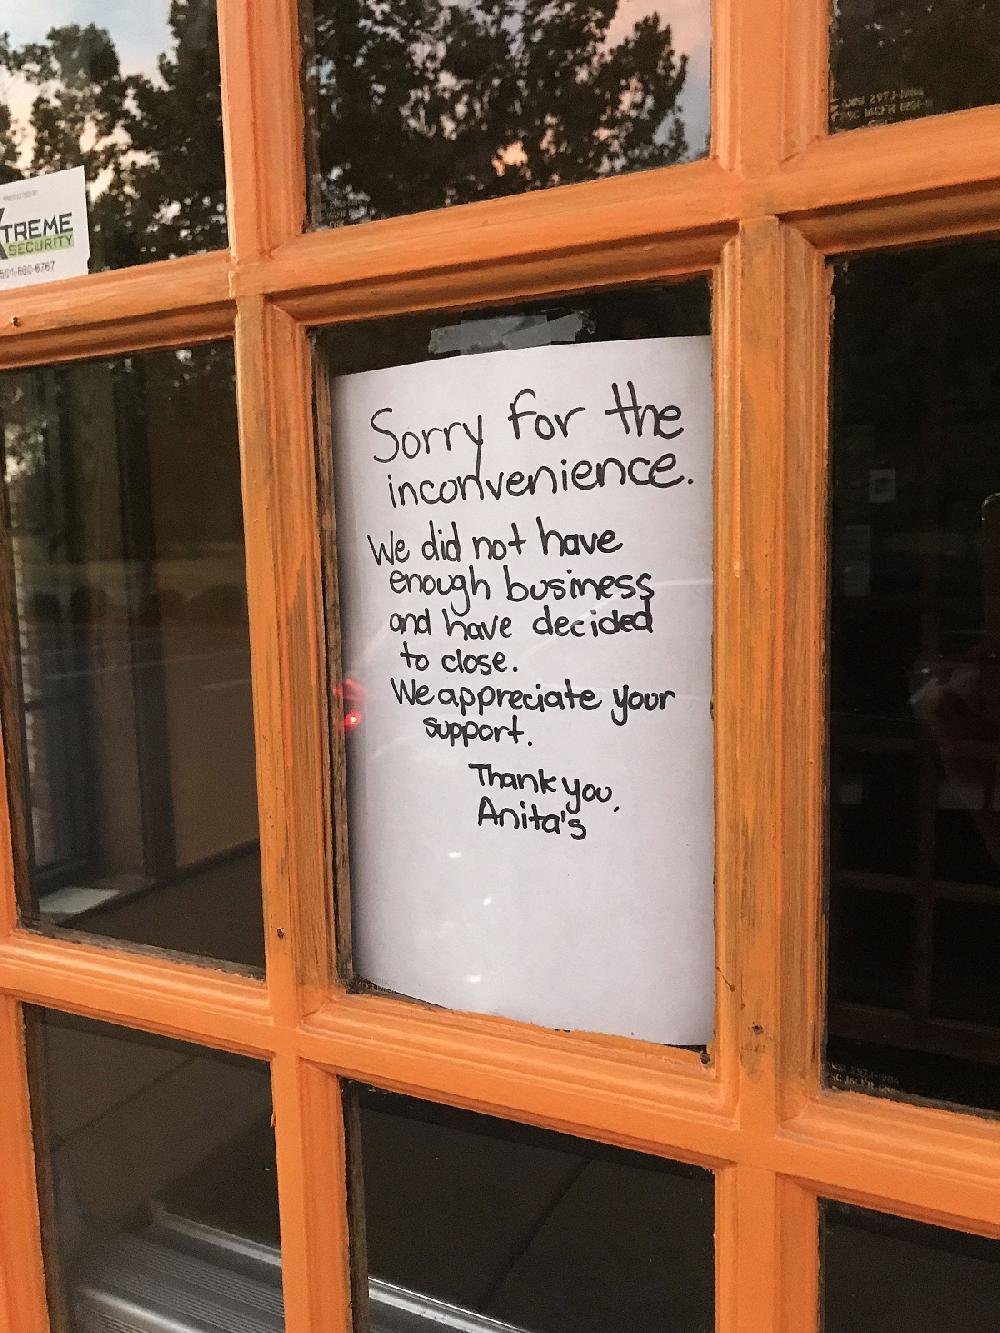 Anita's Cantina & Grill, 6 Mabelvale Plaza Drive, has closed; a sign on the door explains low customer turnout is the reason.